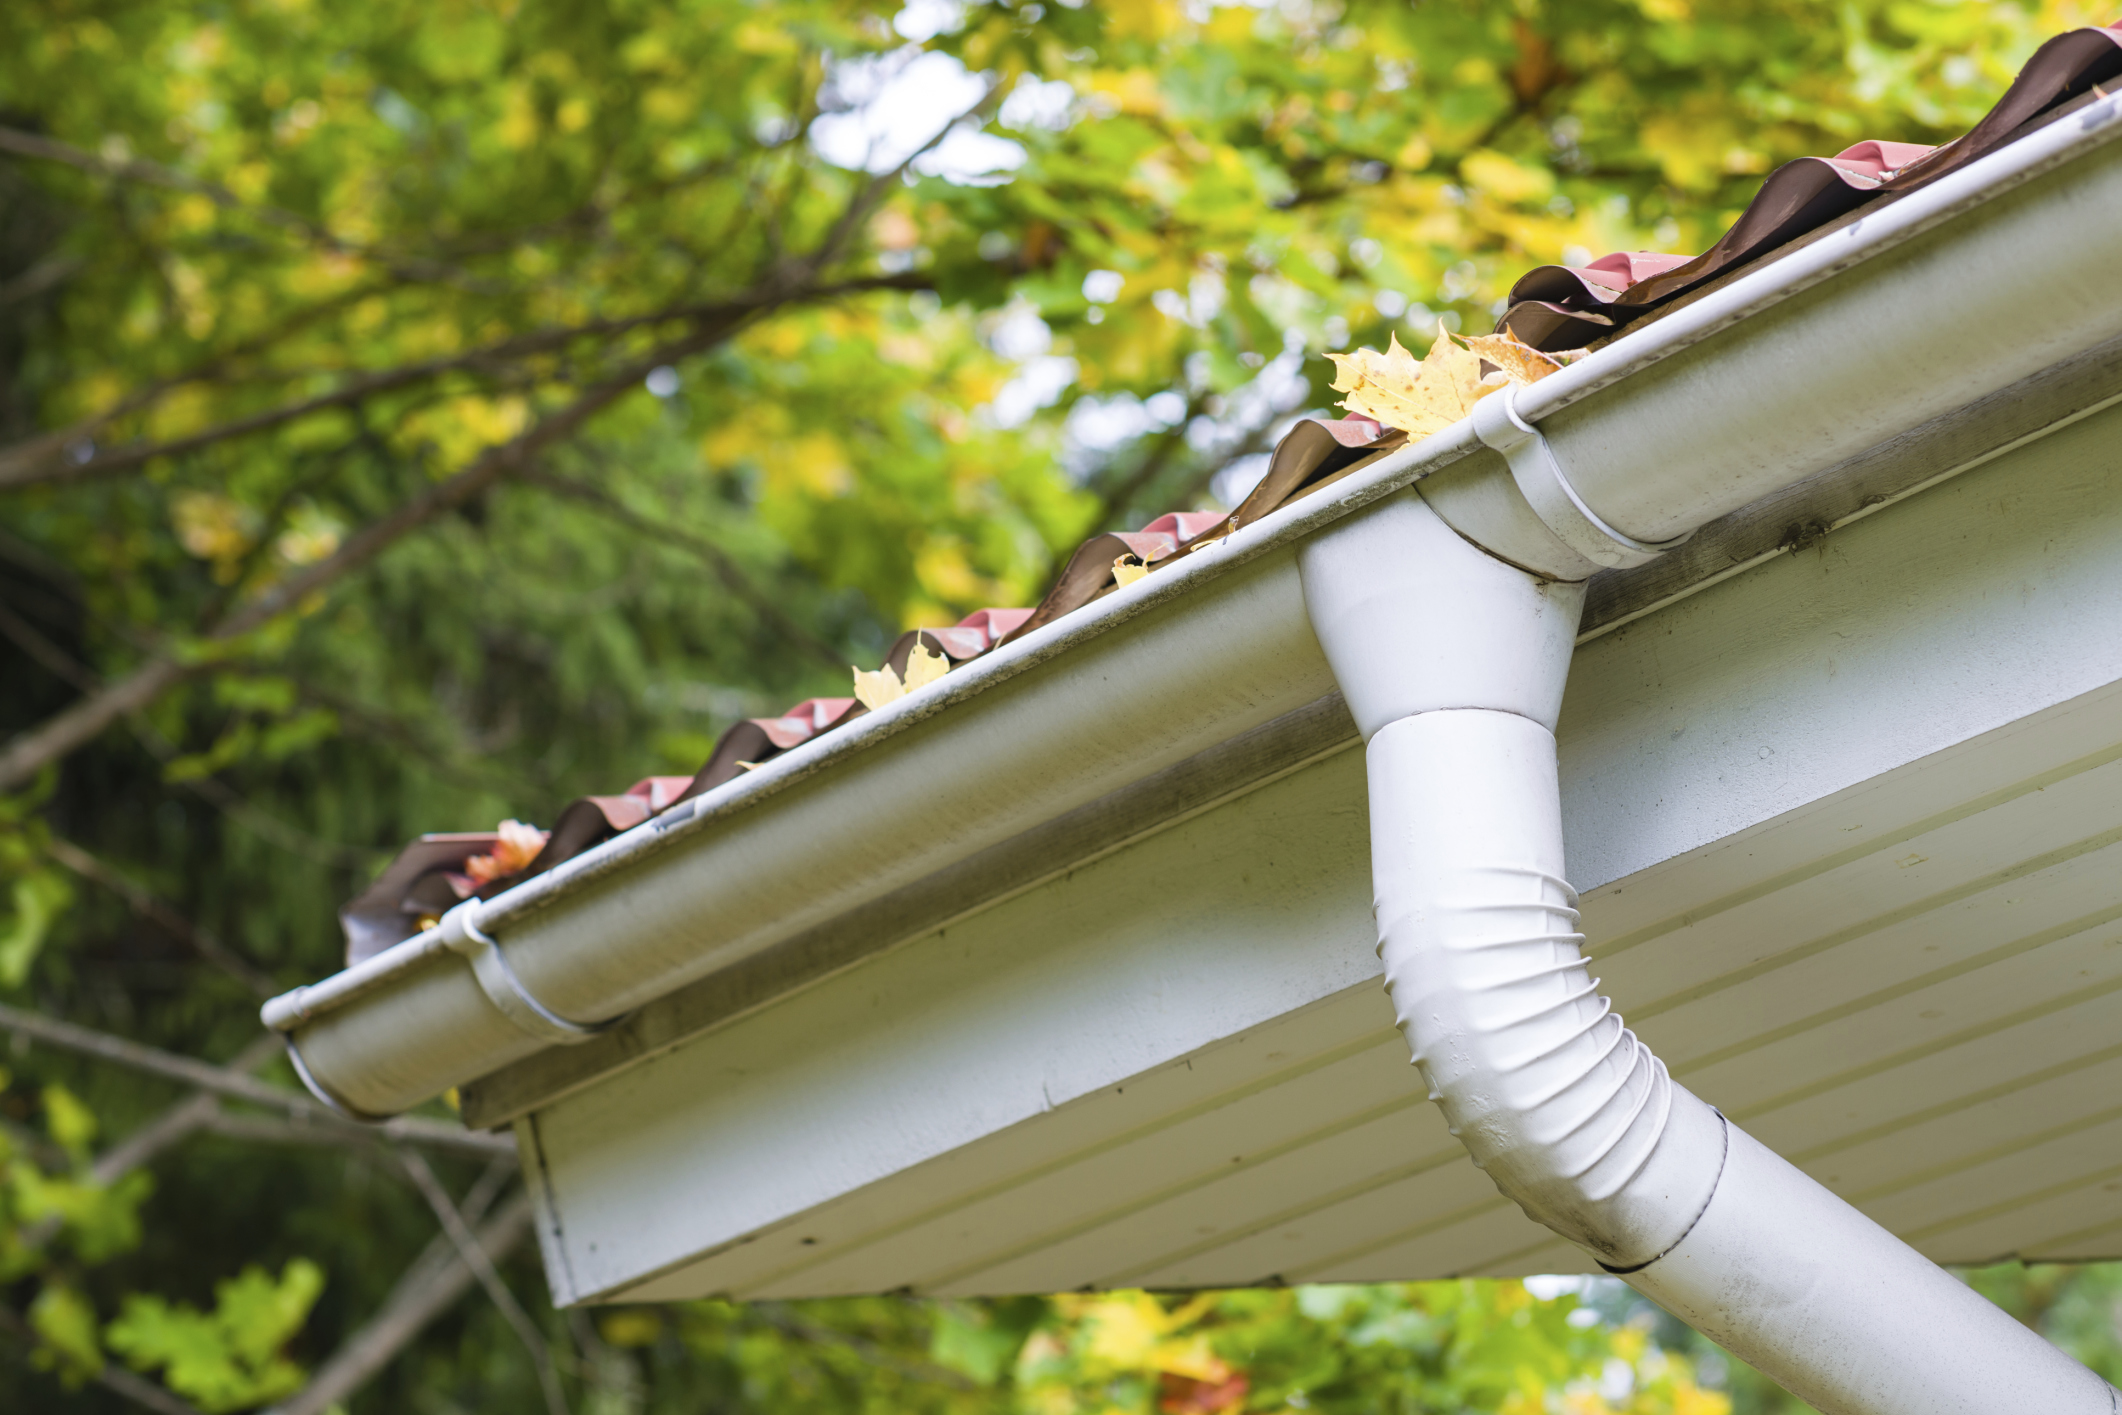 Homemade Gutter Cleaning Tools Ehow